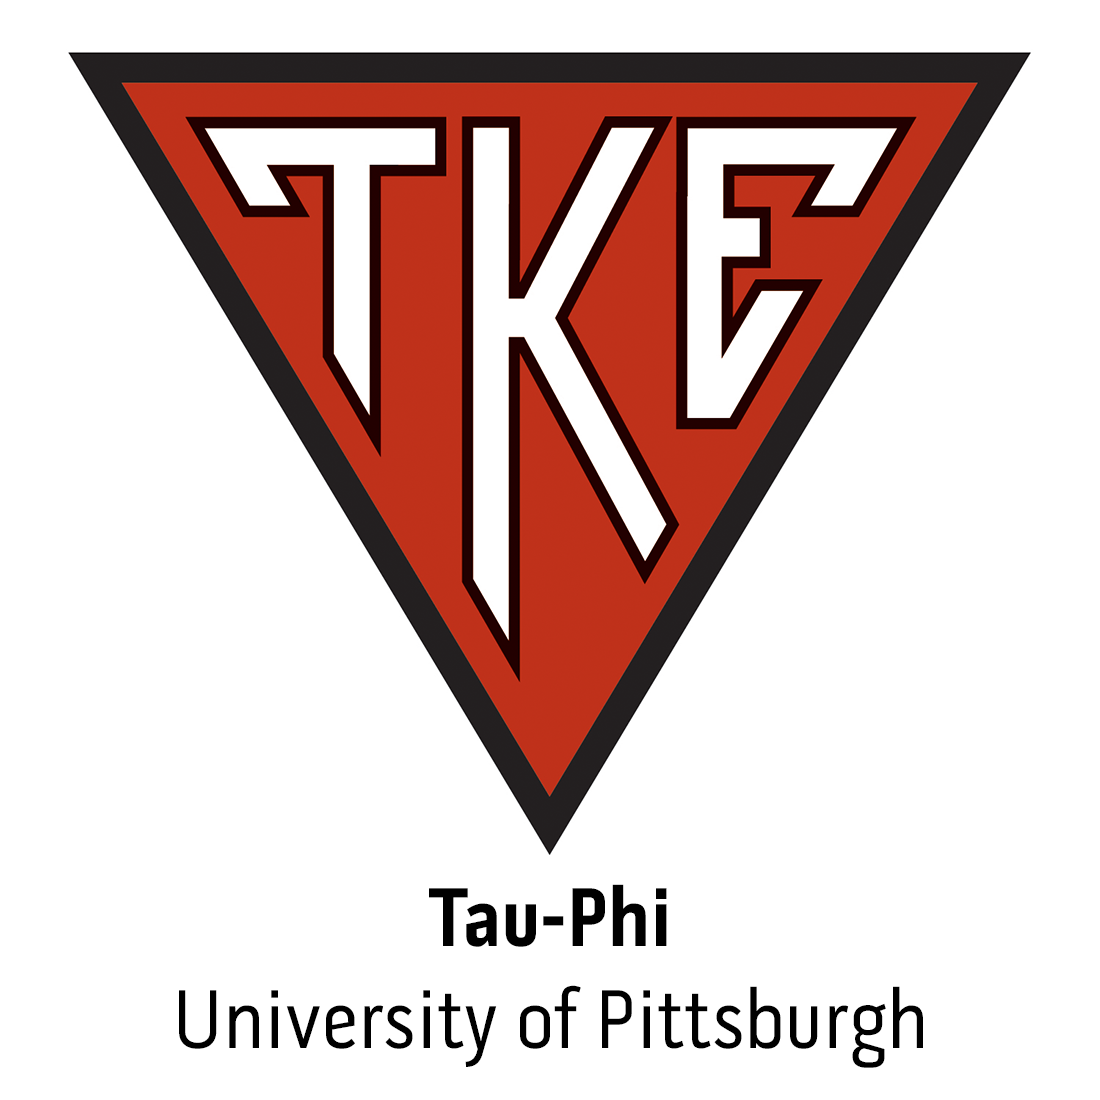 Tau-Phi Chapter at University of Pittsburgh